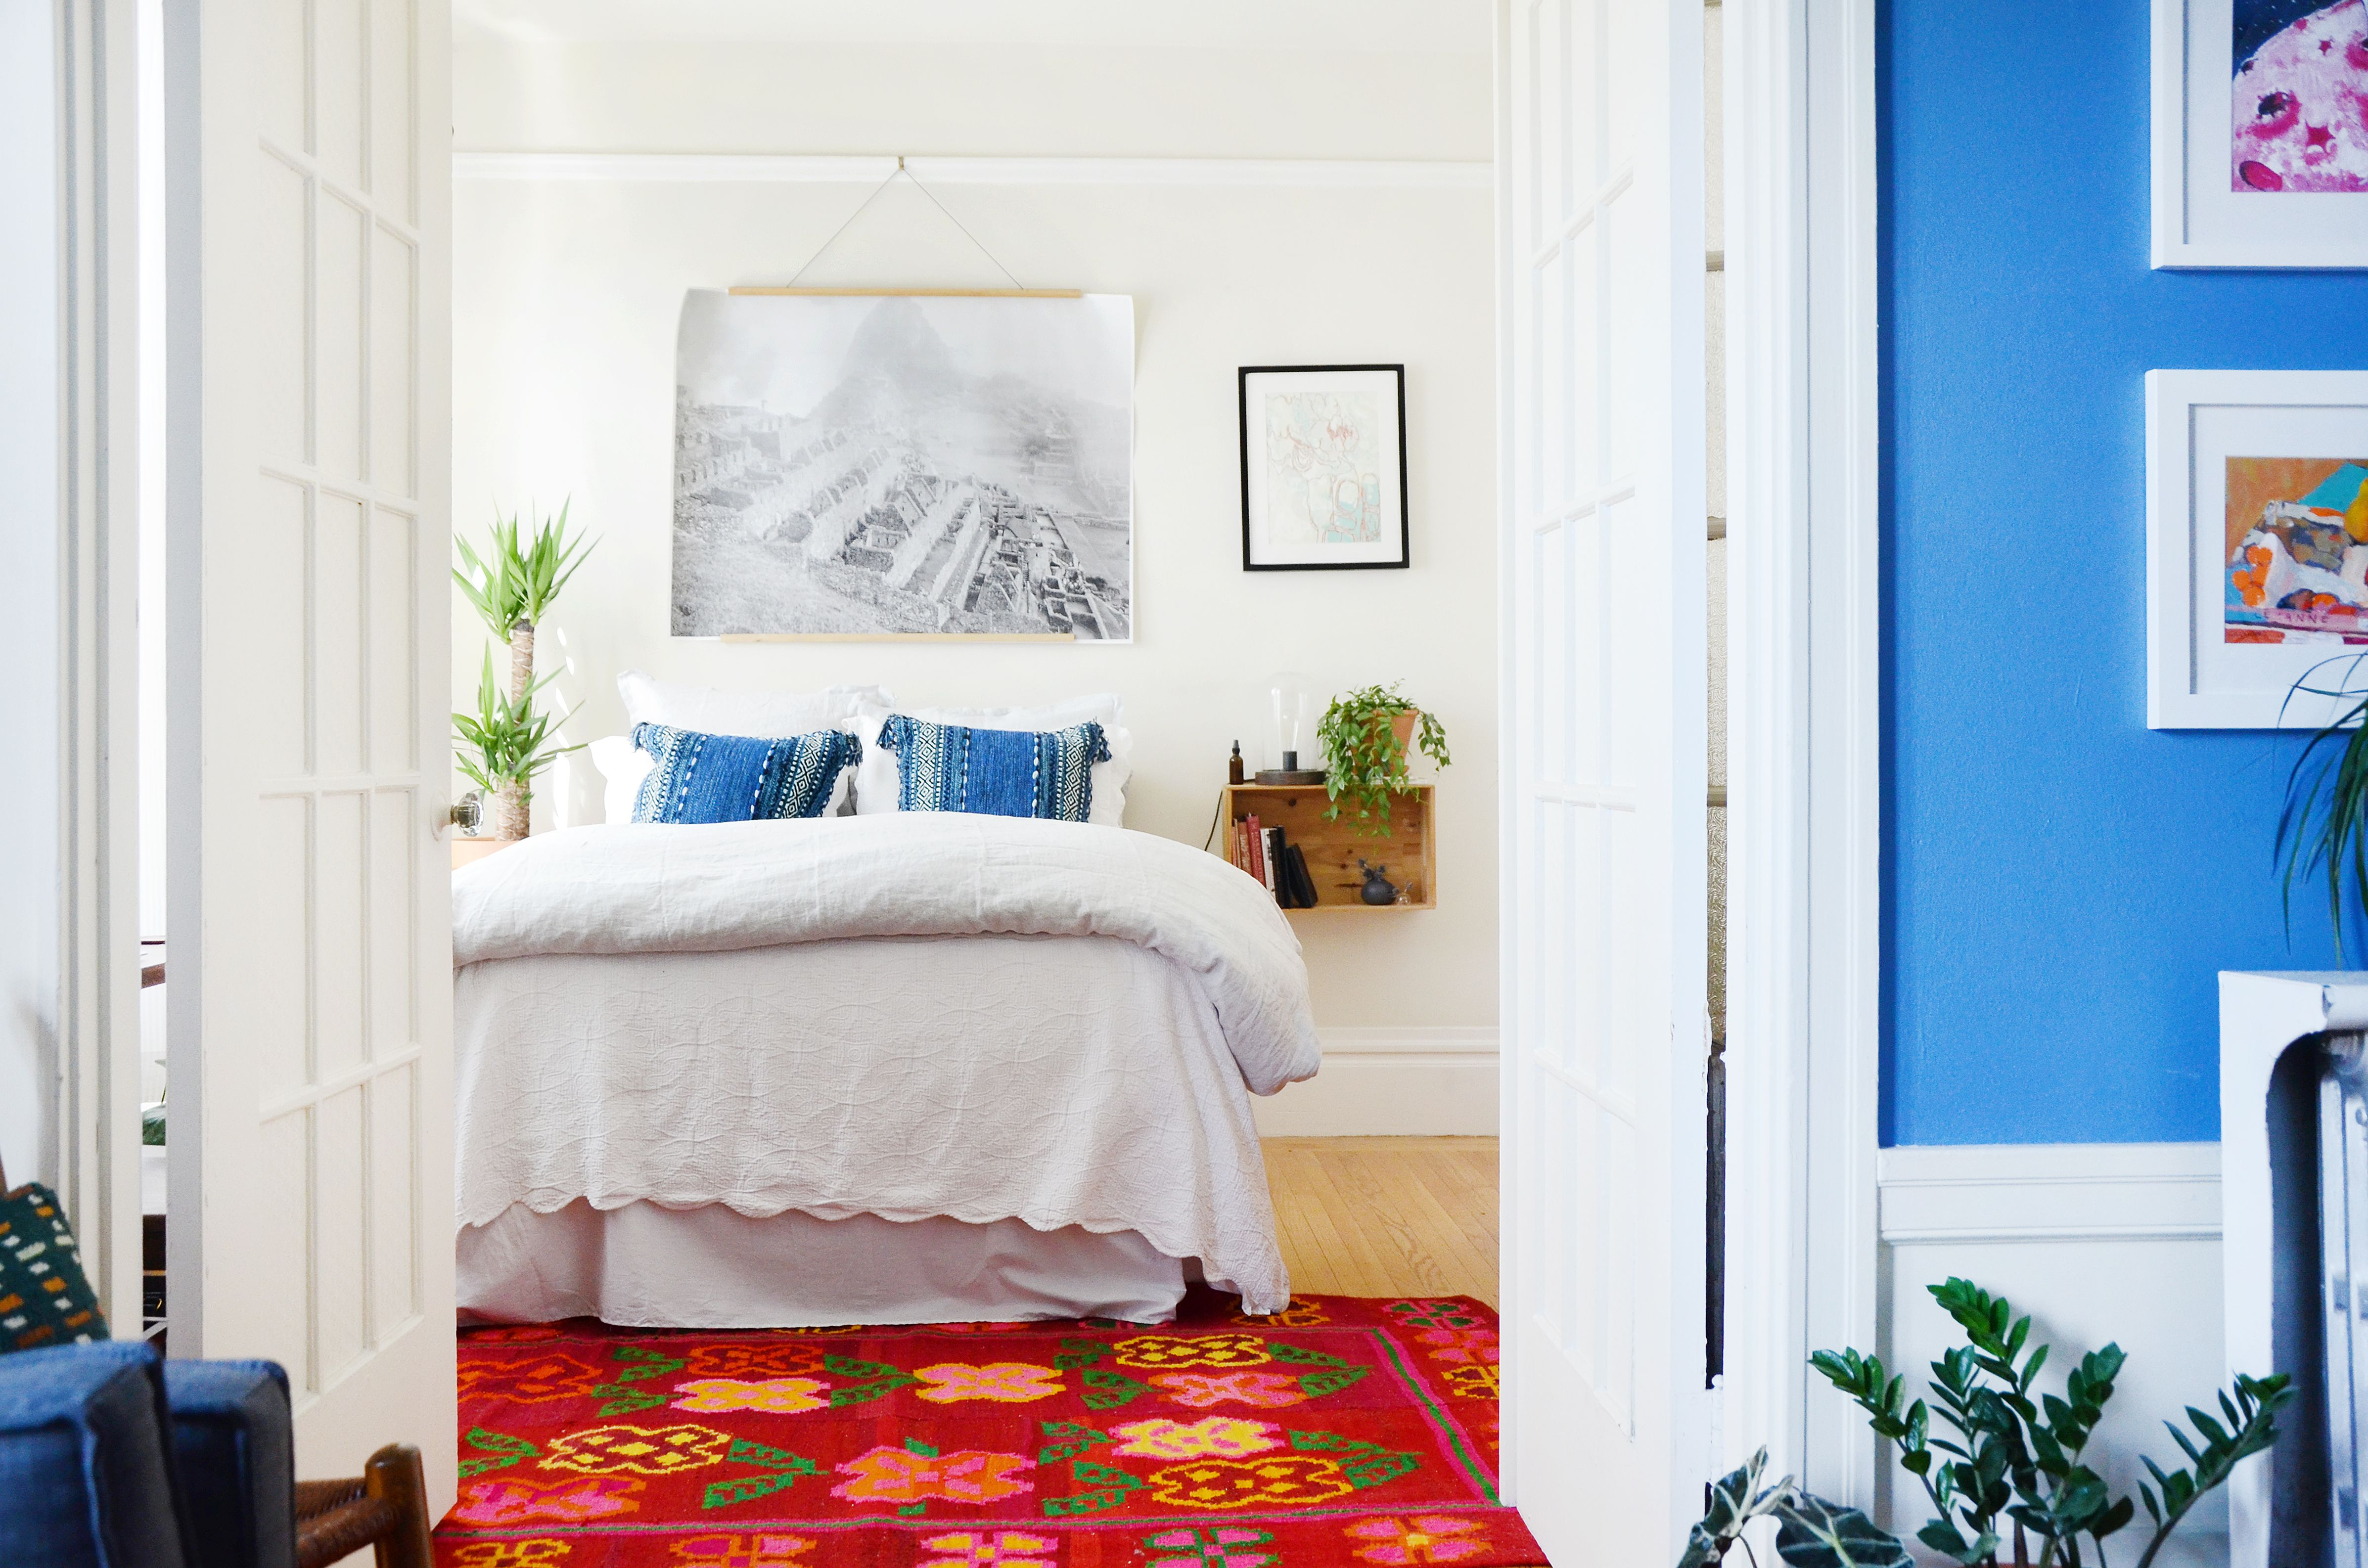 Room Sweep! You're 20 Minutes from a ClutterFree Bedroom